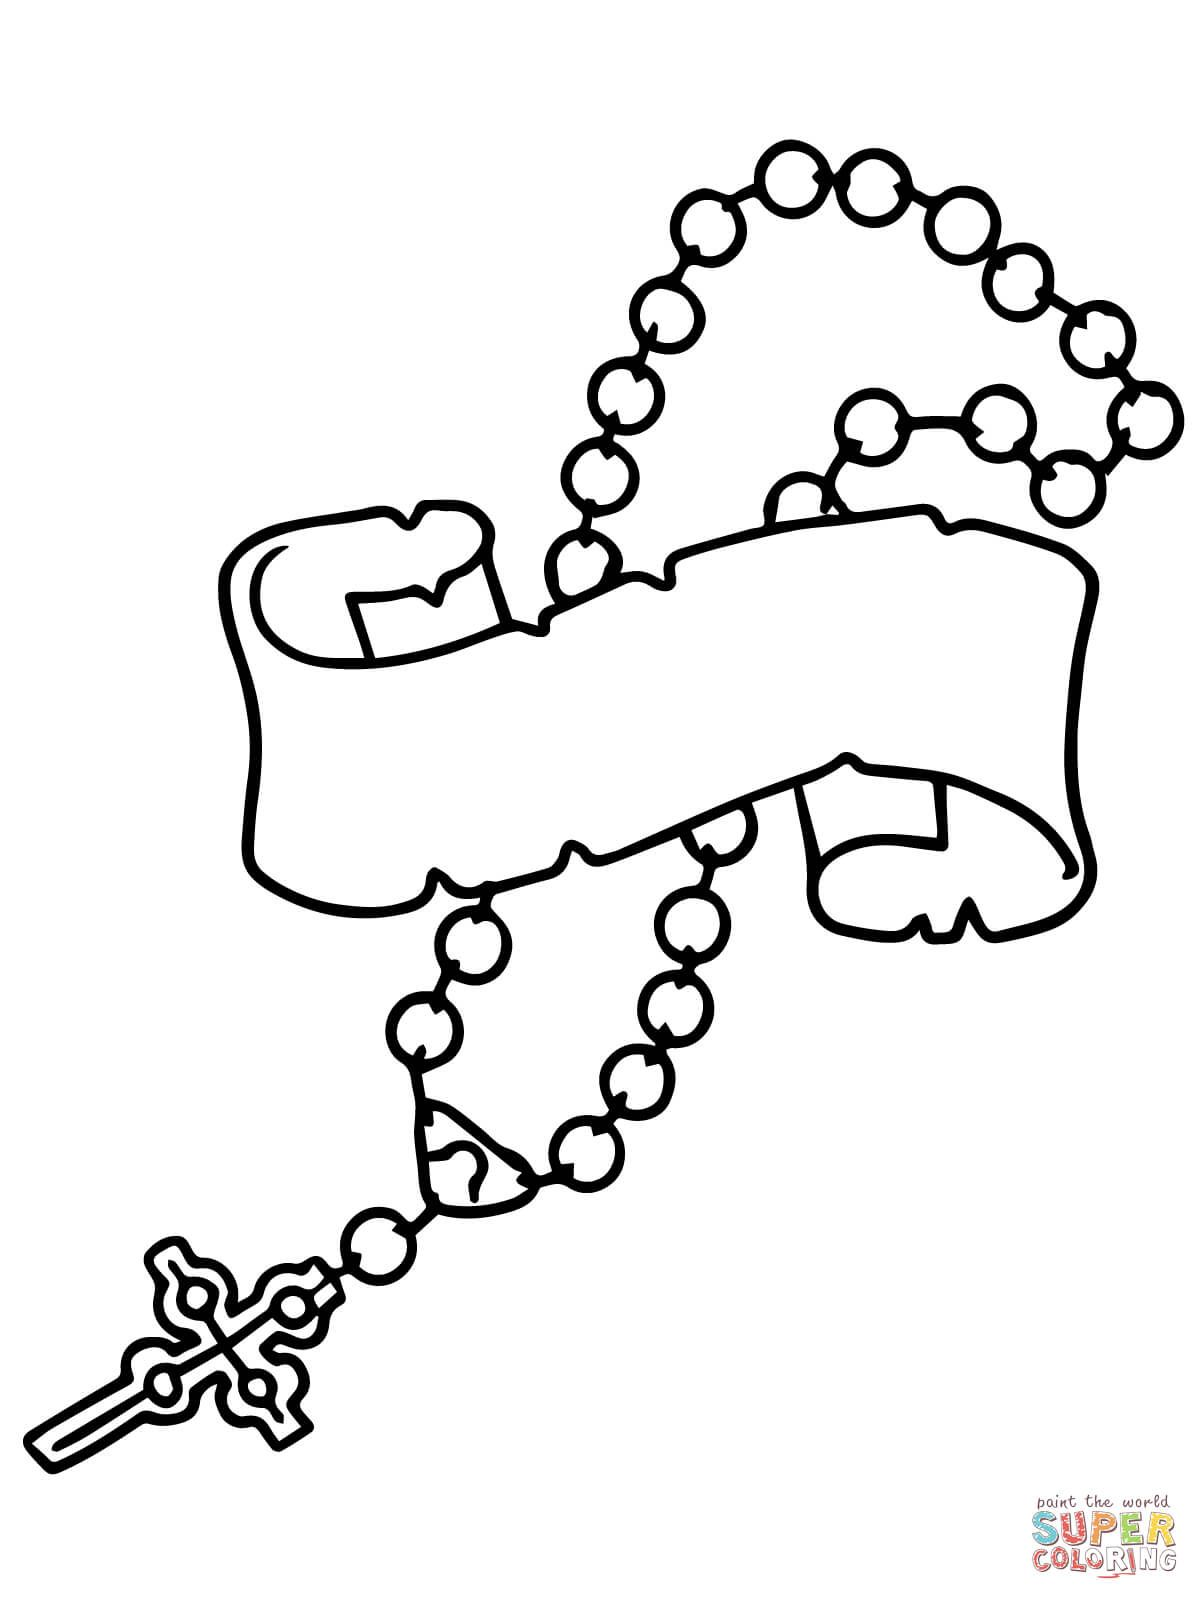 1200x1600 Praying Hands With Rosary Beads Drawing Archives Colossal Squid